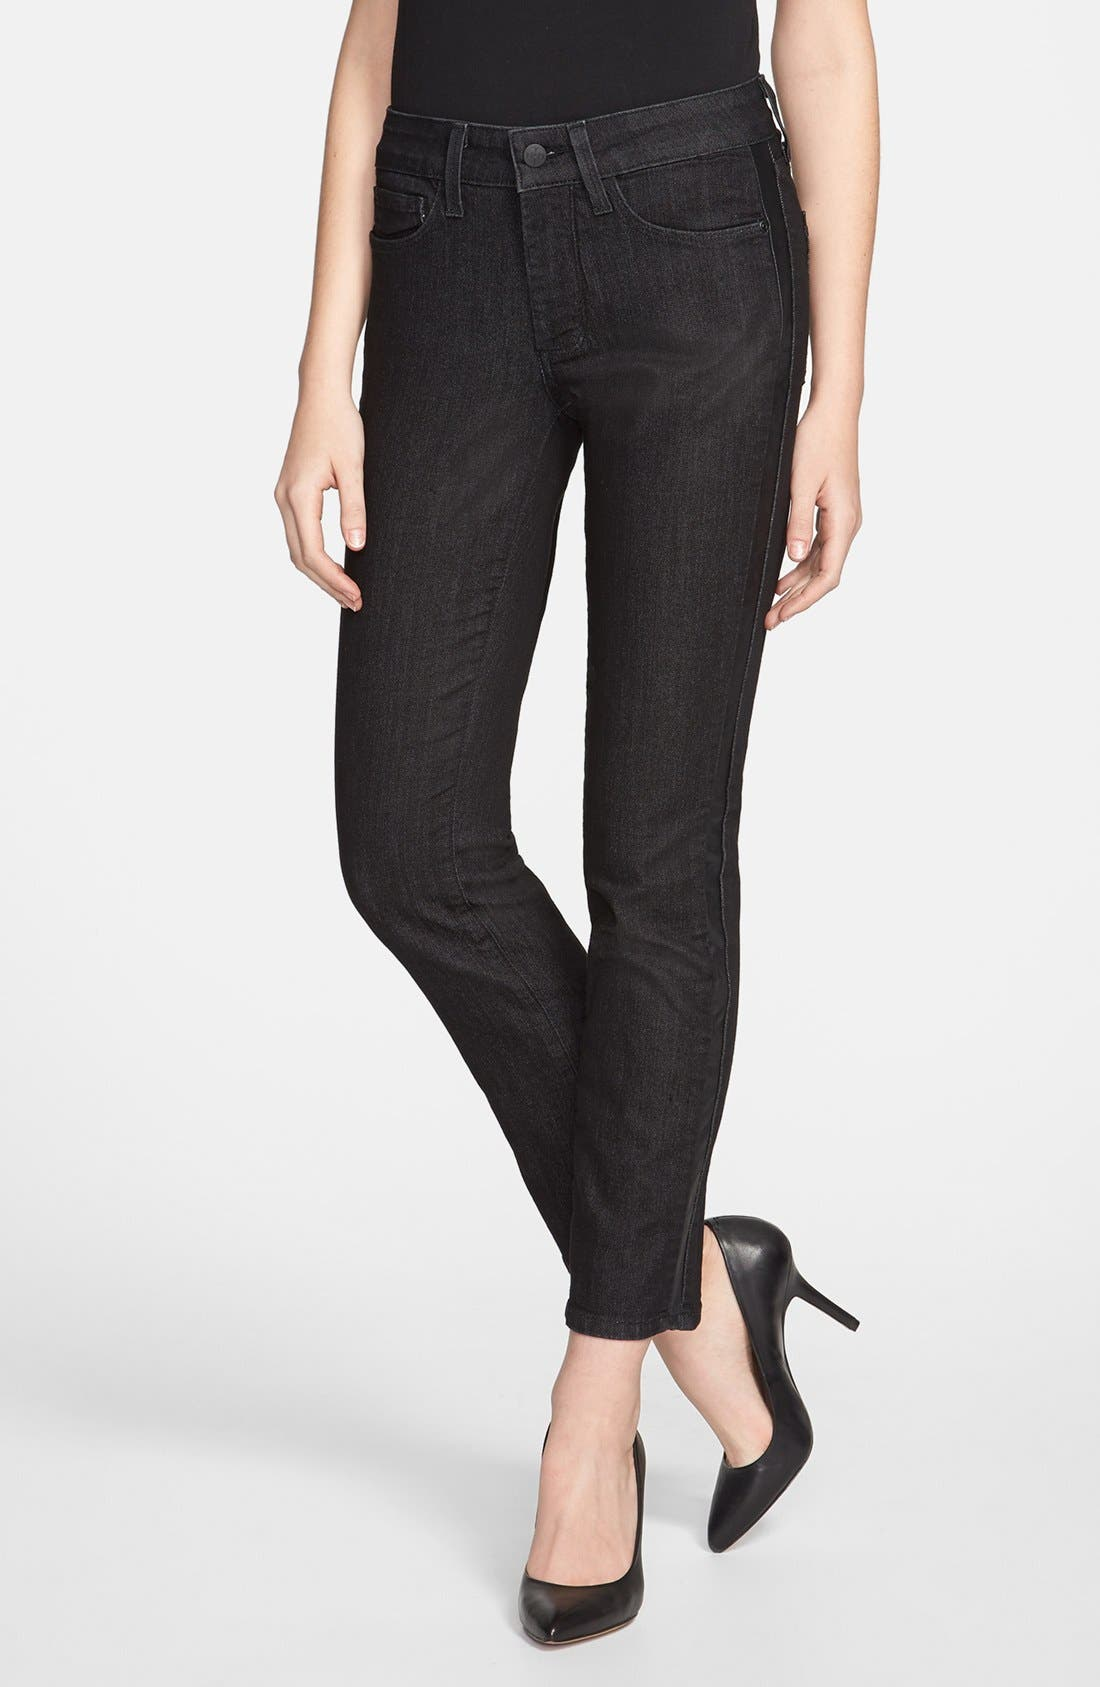 Alternate Image 1 Selected - NYDJ 'Sheri' Tuxedo Stripe Stretch Skinny Jeans (Black) (Petite)